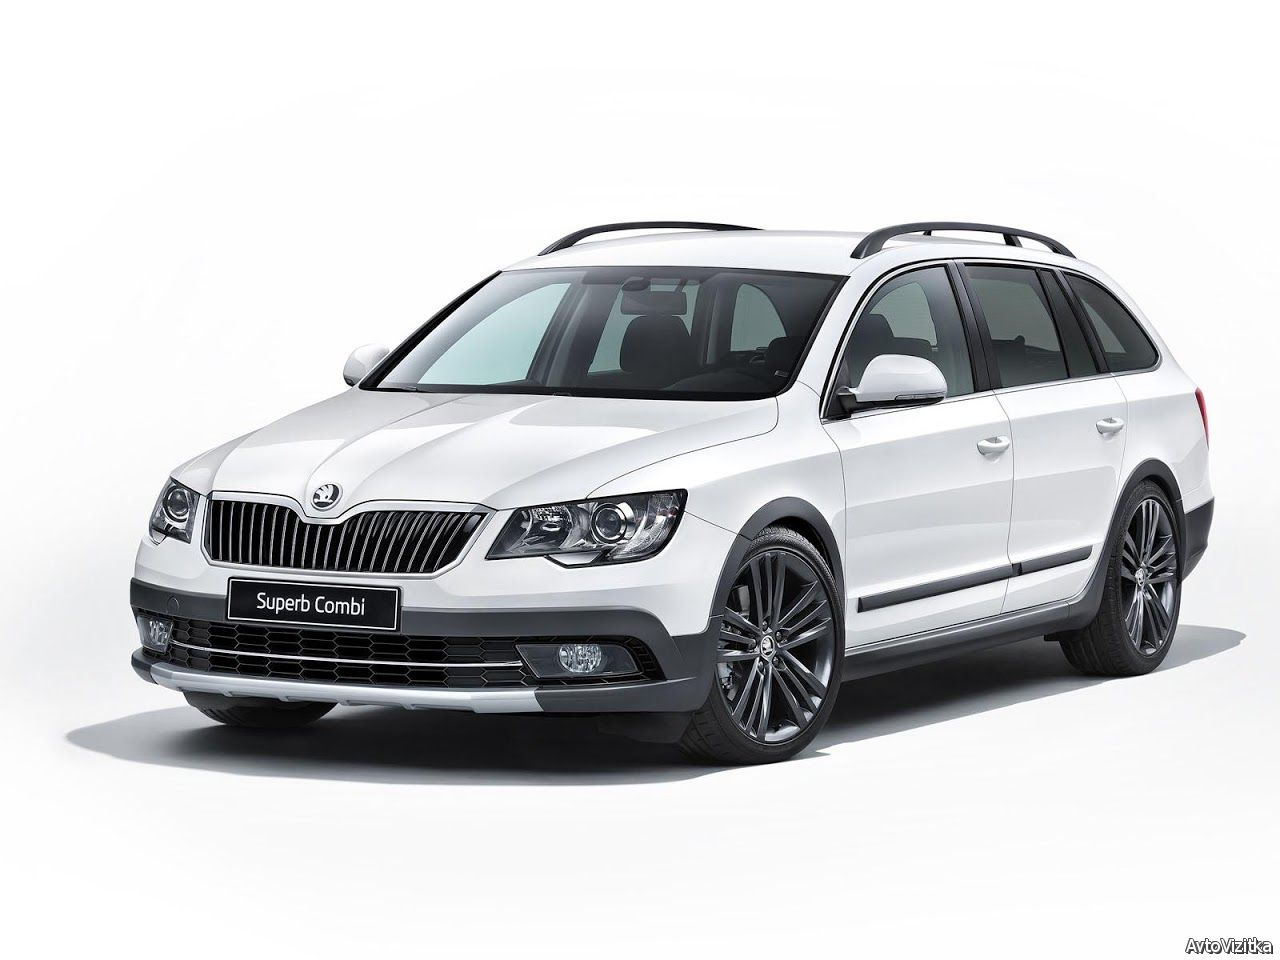 2016 skoda superb combi pictures information and specs auto. Black Bedroom Furniture Sets. Home Design Ideas